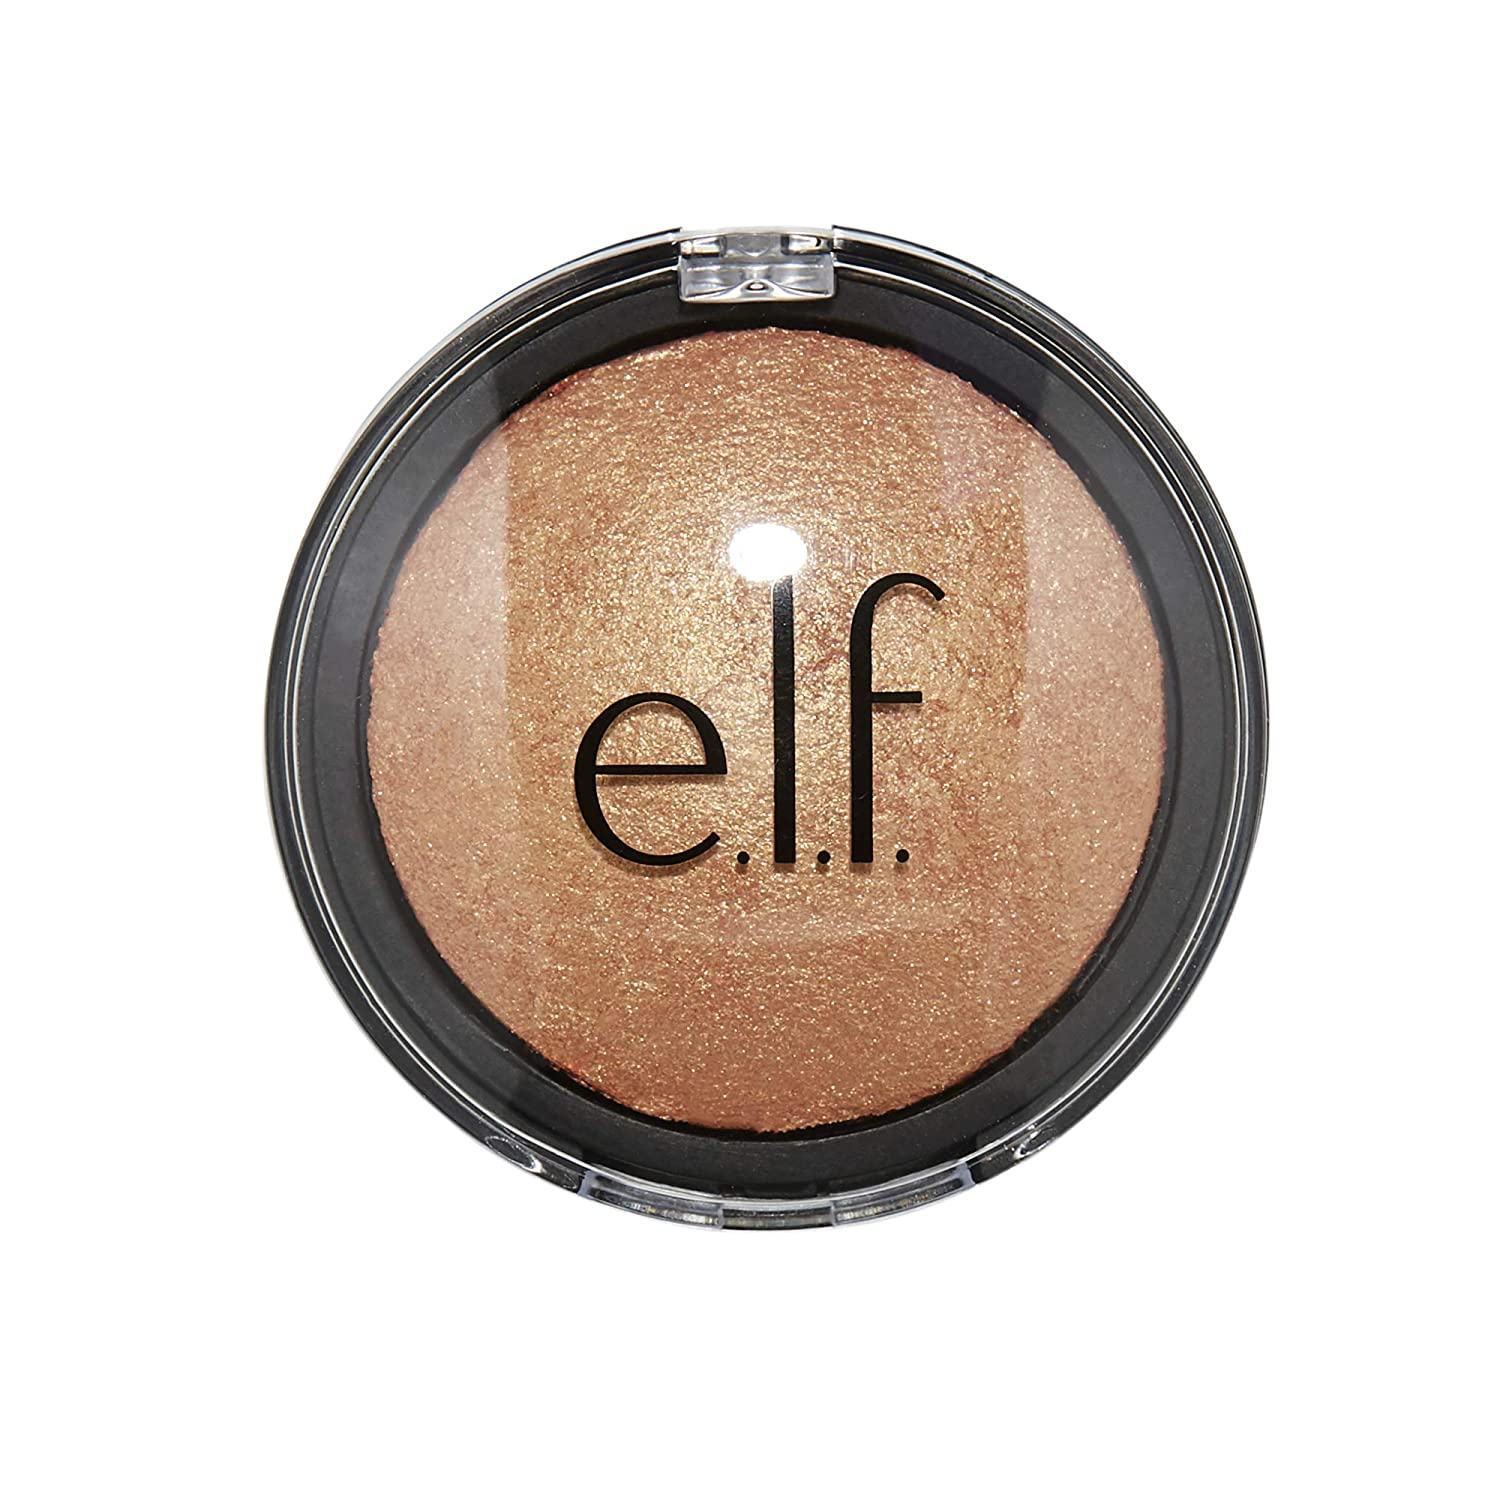 e.l.f. Baked Highlighter, Sheer Shimmering Color, Apricot Glow, 0.16 Ounce